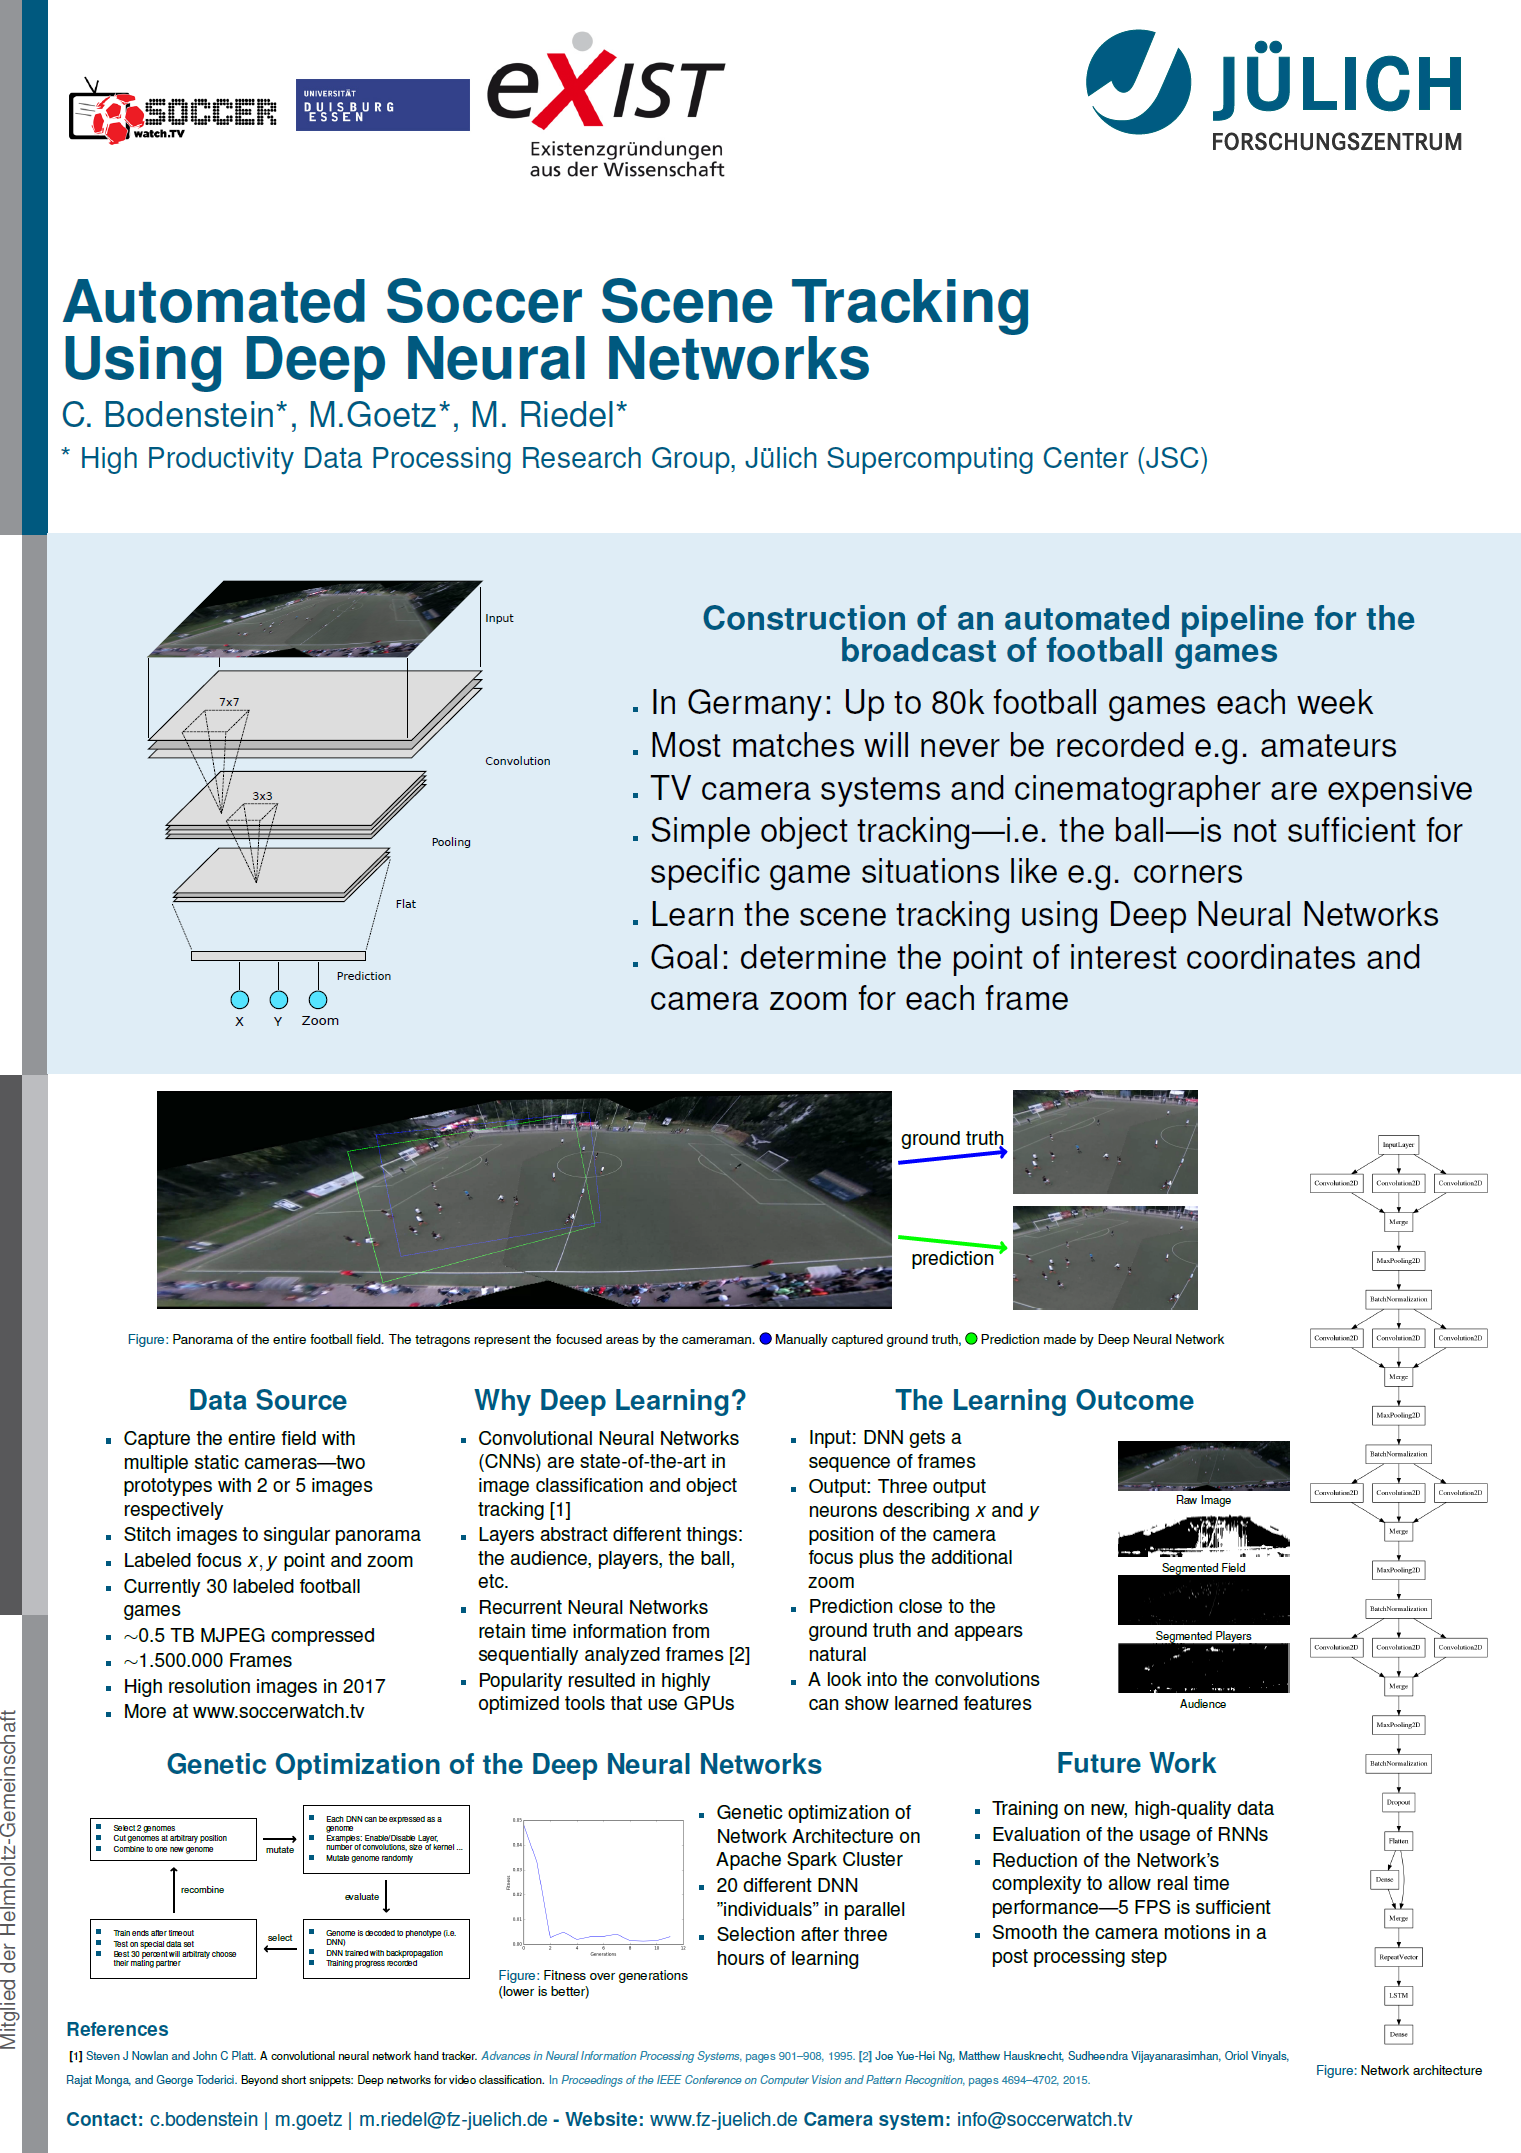 Automated Soccer Scene Tracking Using Deep Neural Networks IAS Symposium 2016 Poster